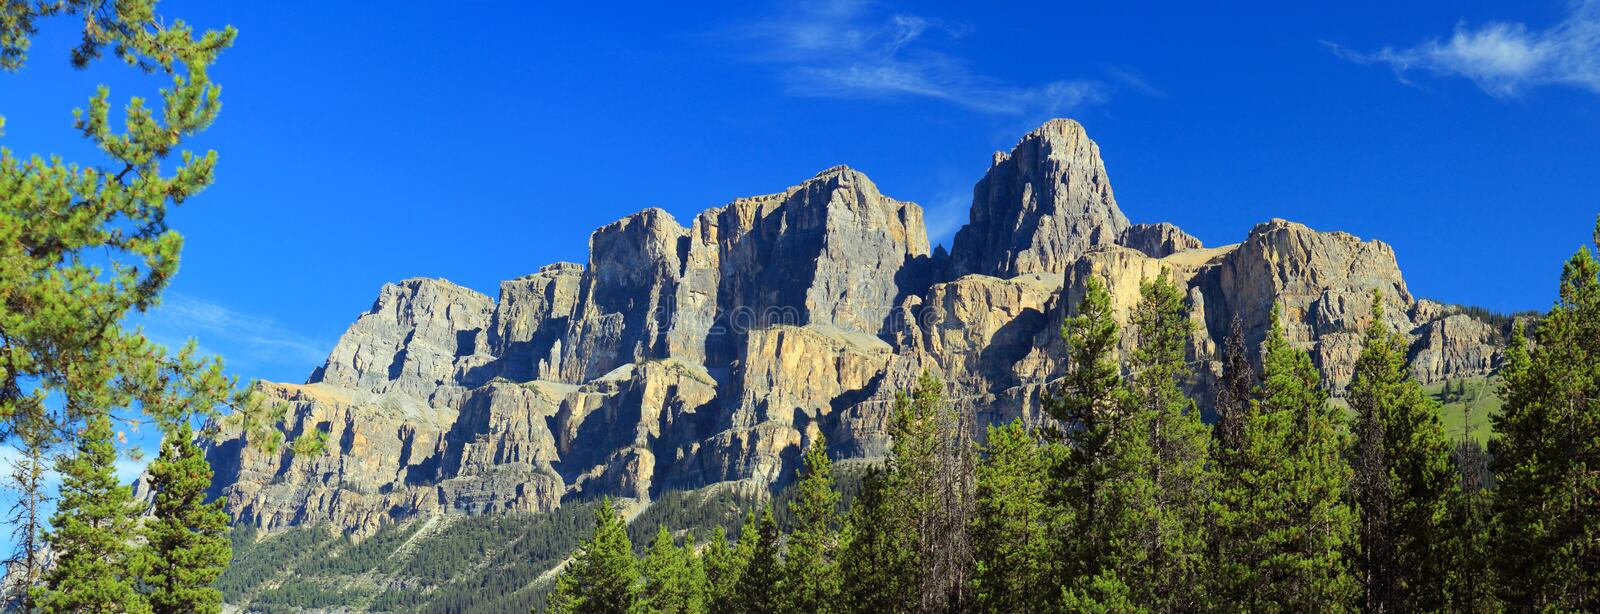 Canadian Rockies Panorama of Castle Mountain from Castle Junction in Morning Light, Banff National Park, Alberta, Canada royalty free stock image